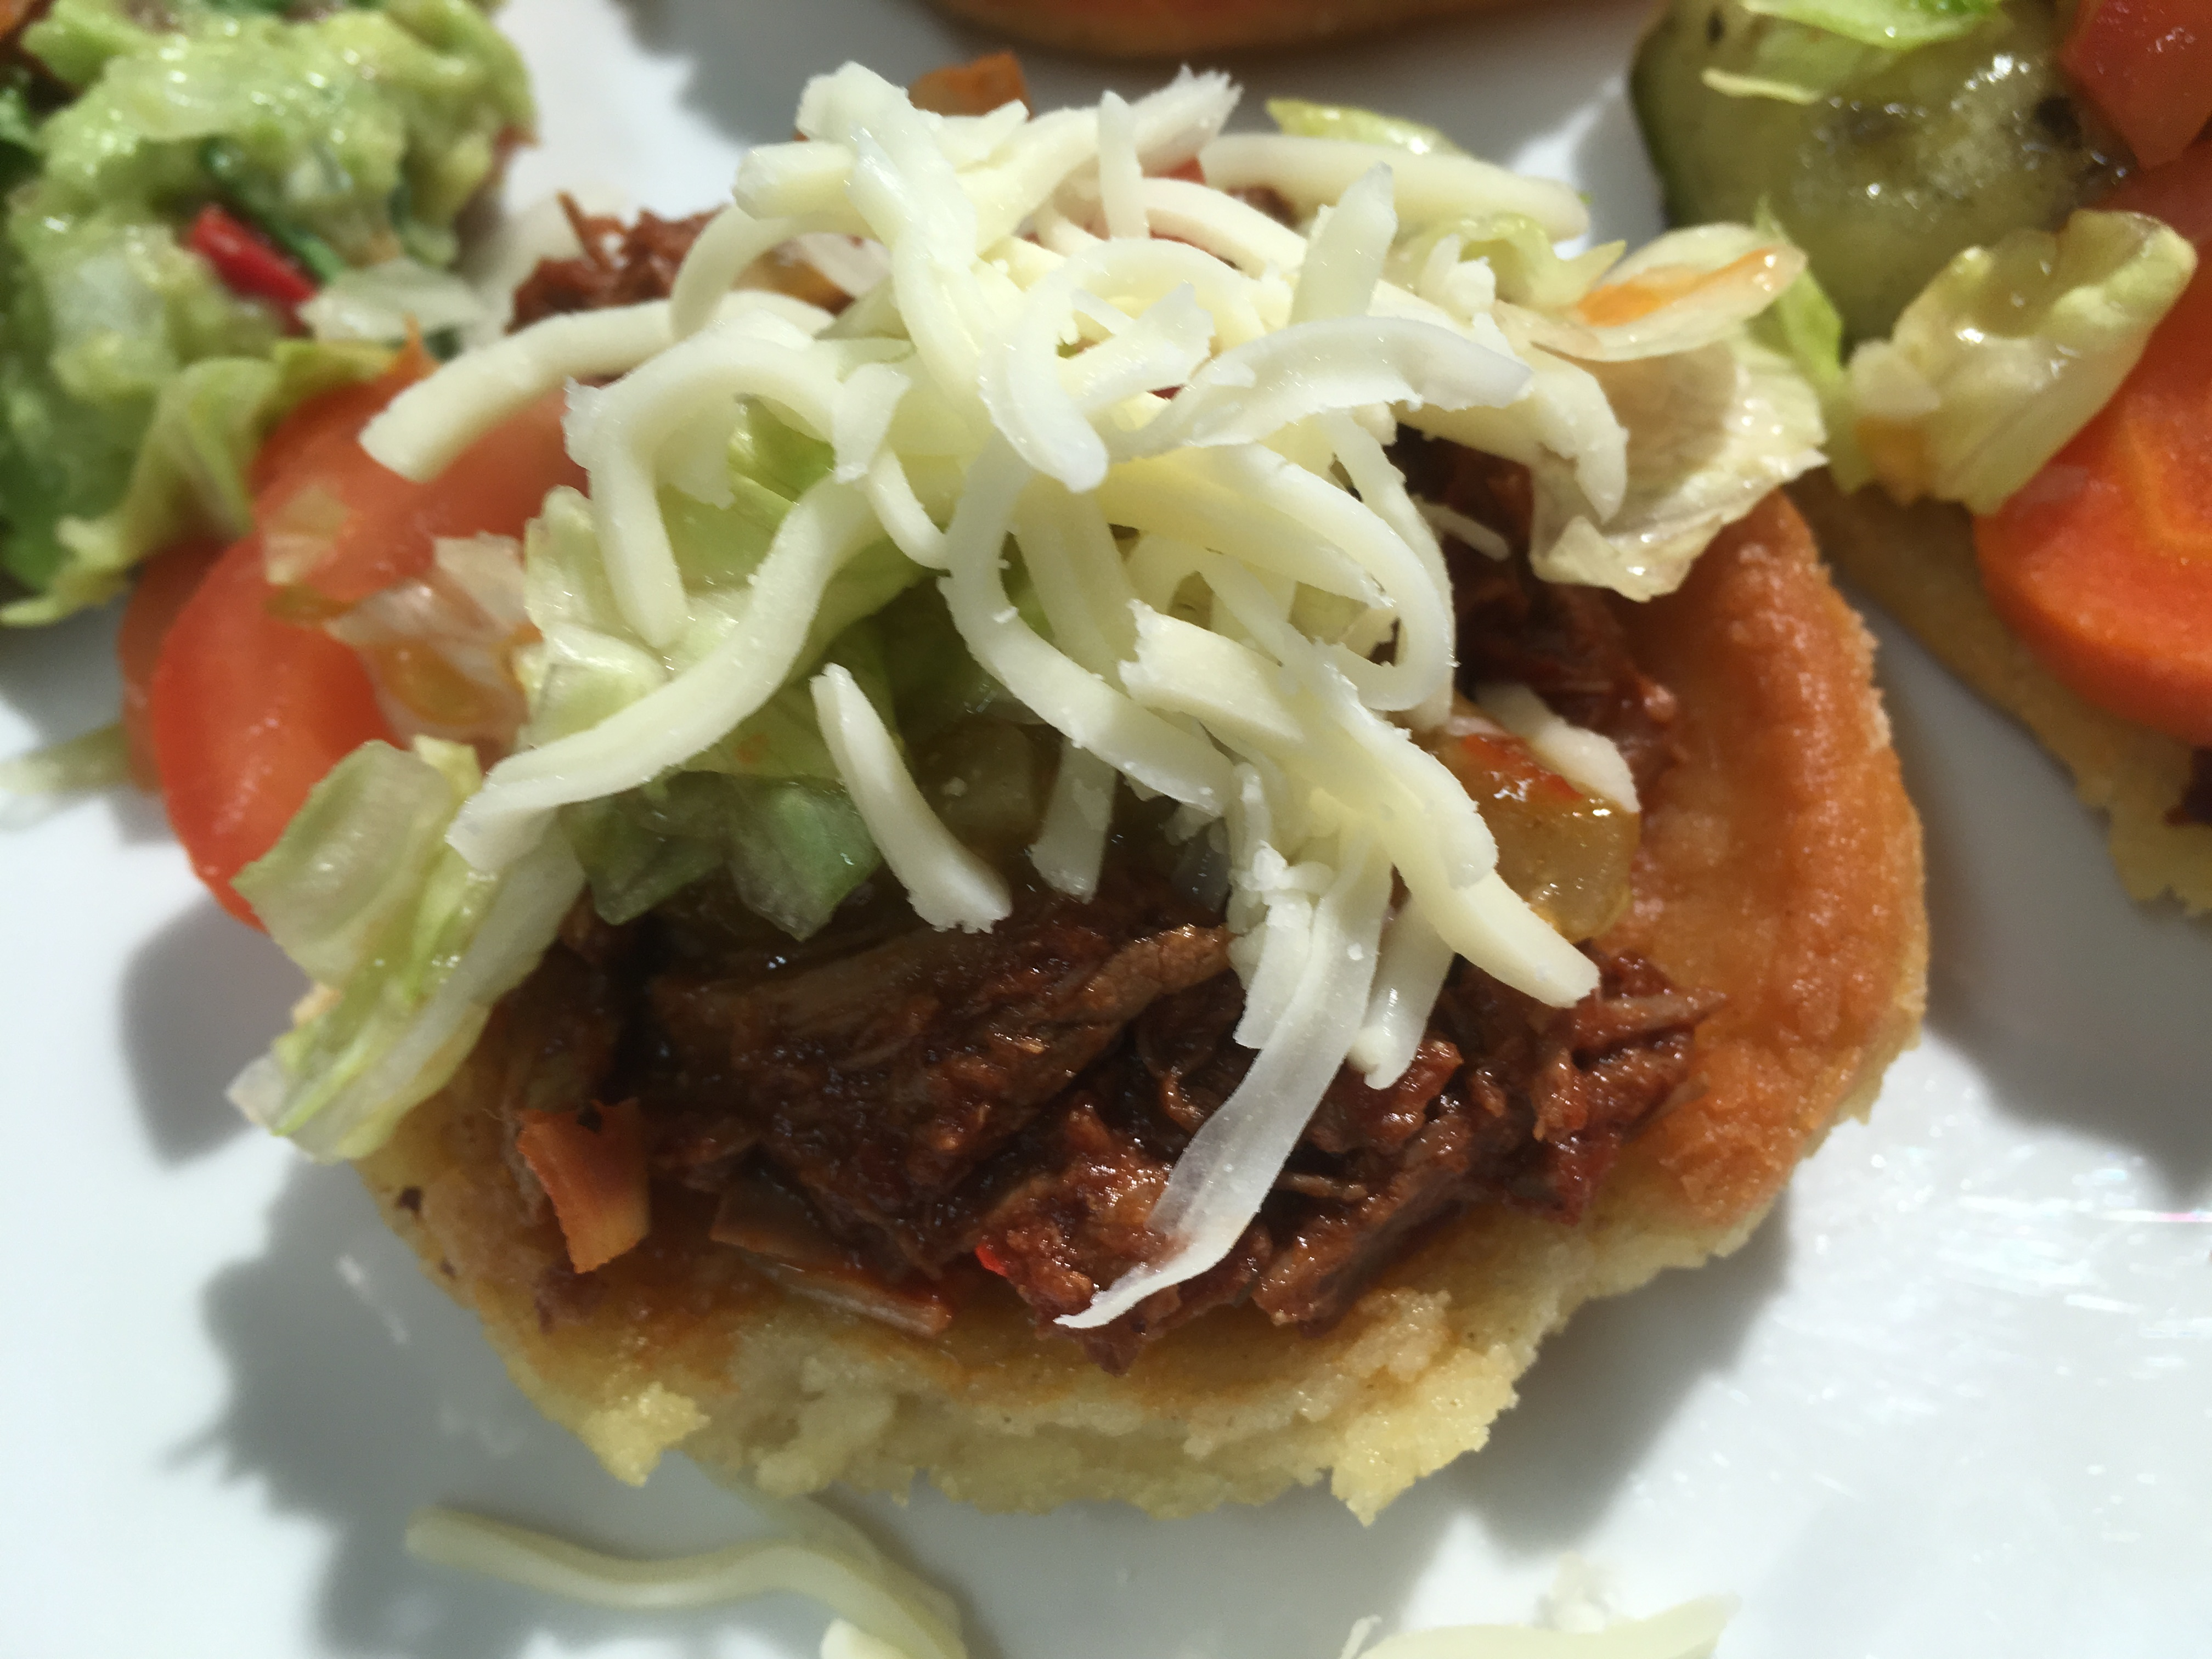 Mexican With Claudia – Shredded Beef Sopes Filling